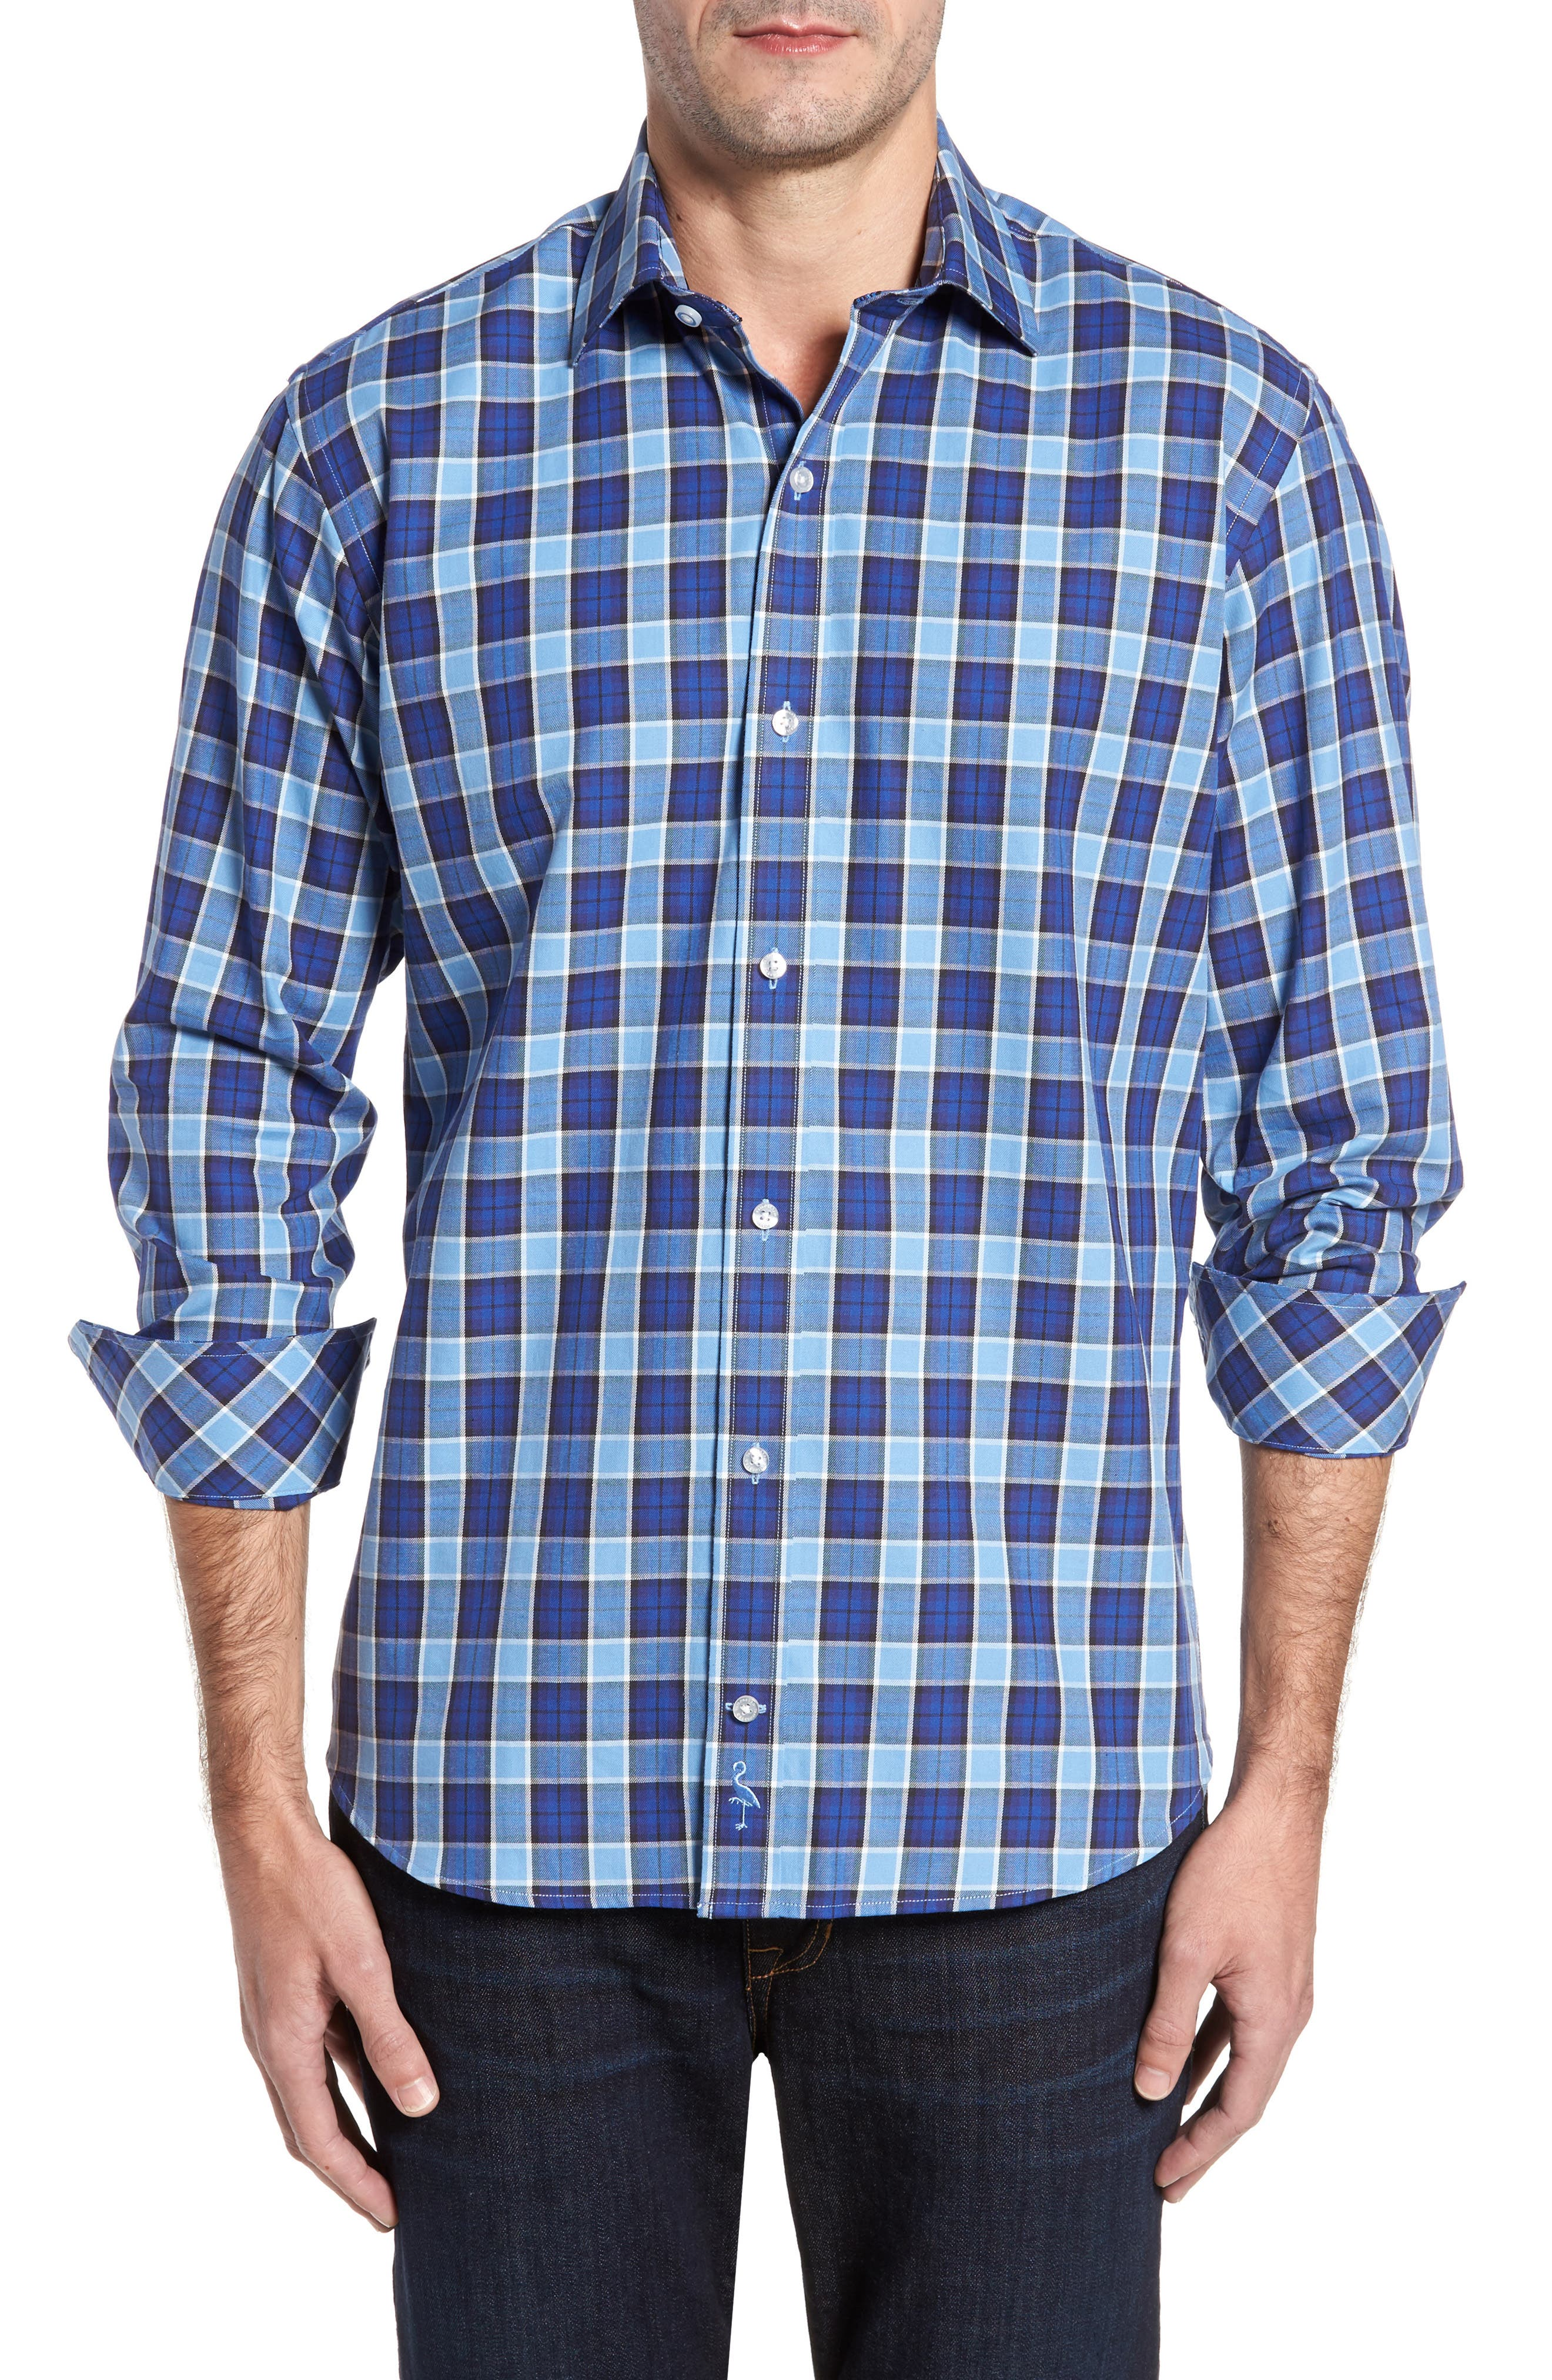 Alternate Image 1 Selected - TailorByrd Brownsville Windowpane Check Twill Sport Shirt